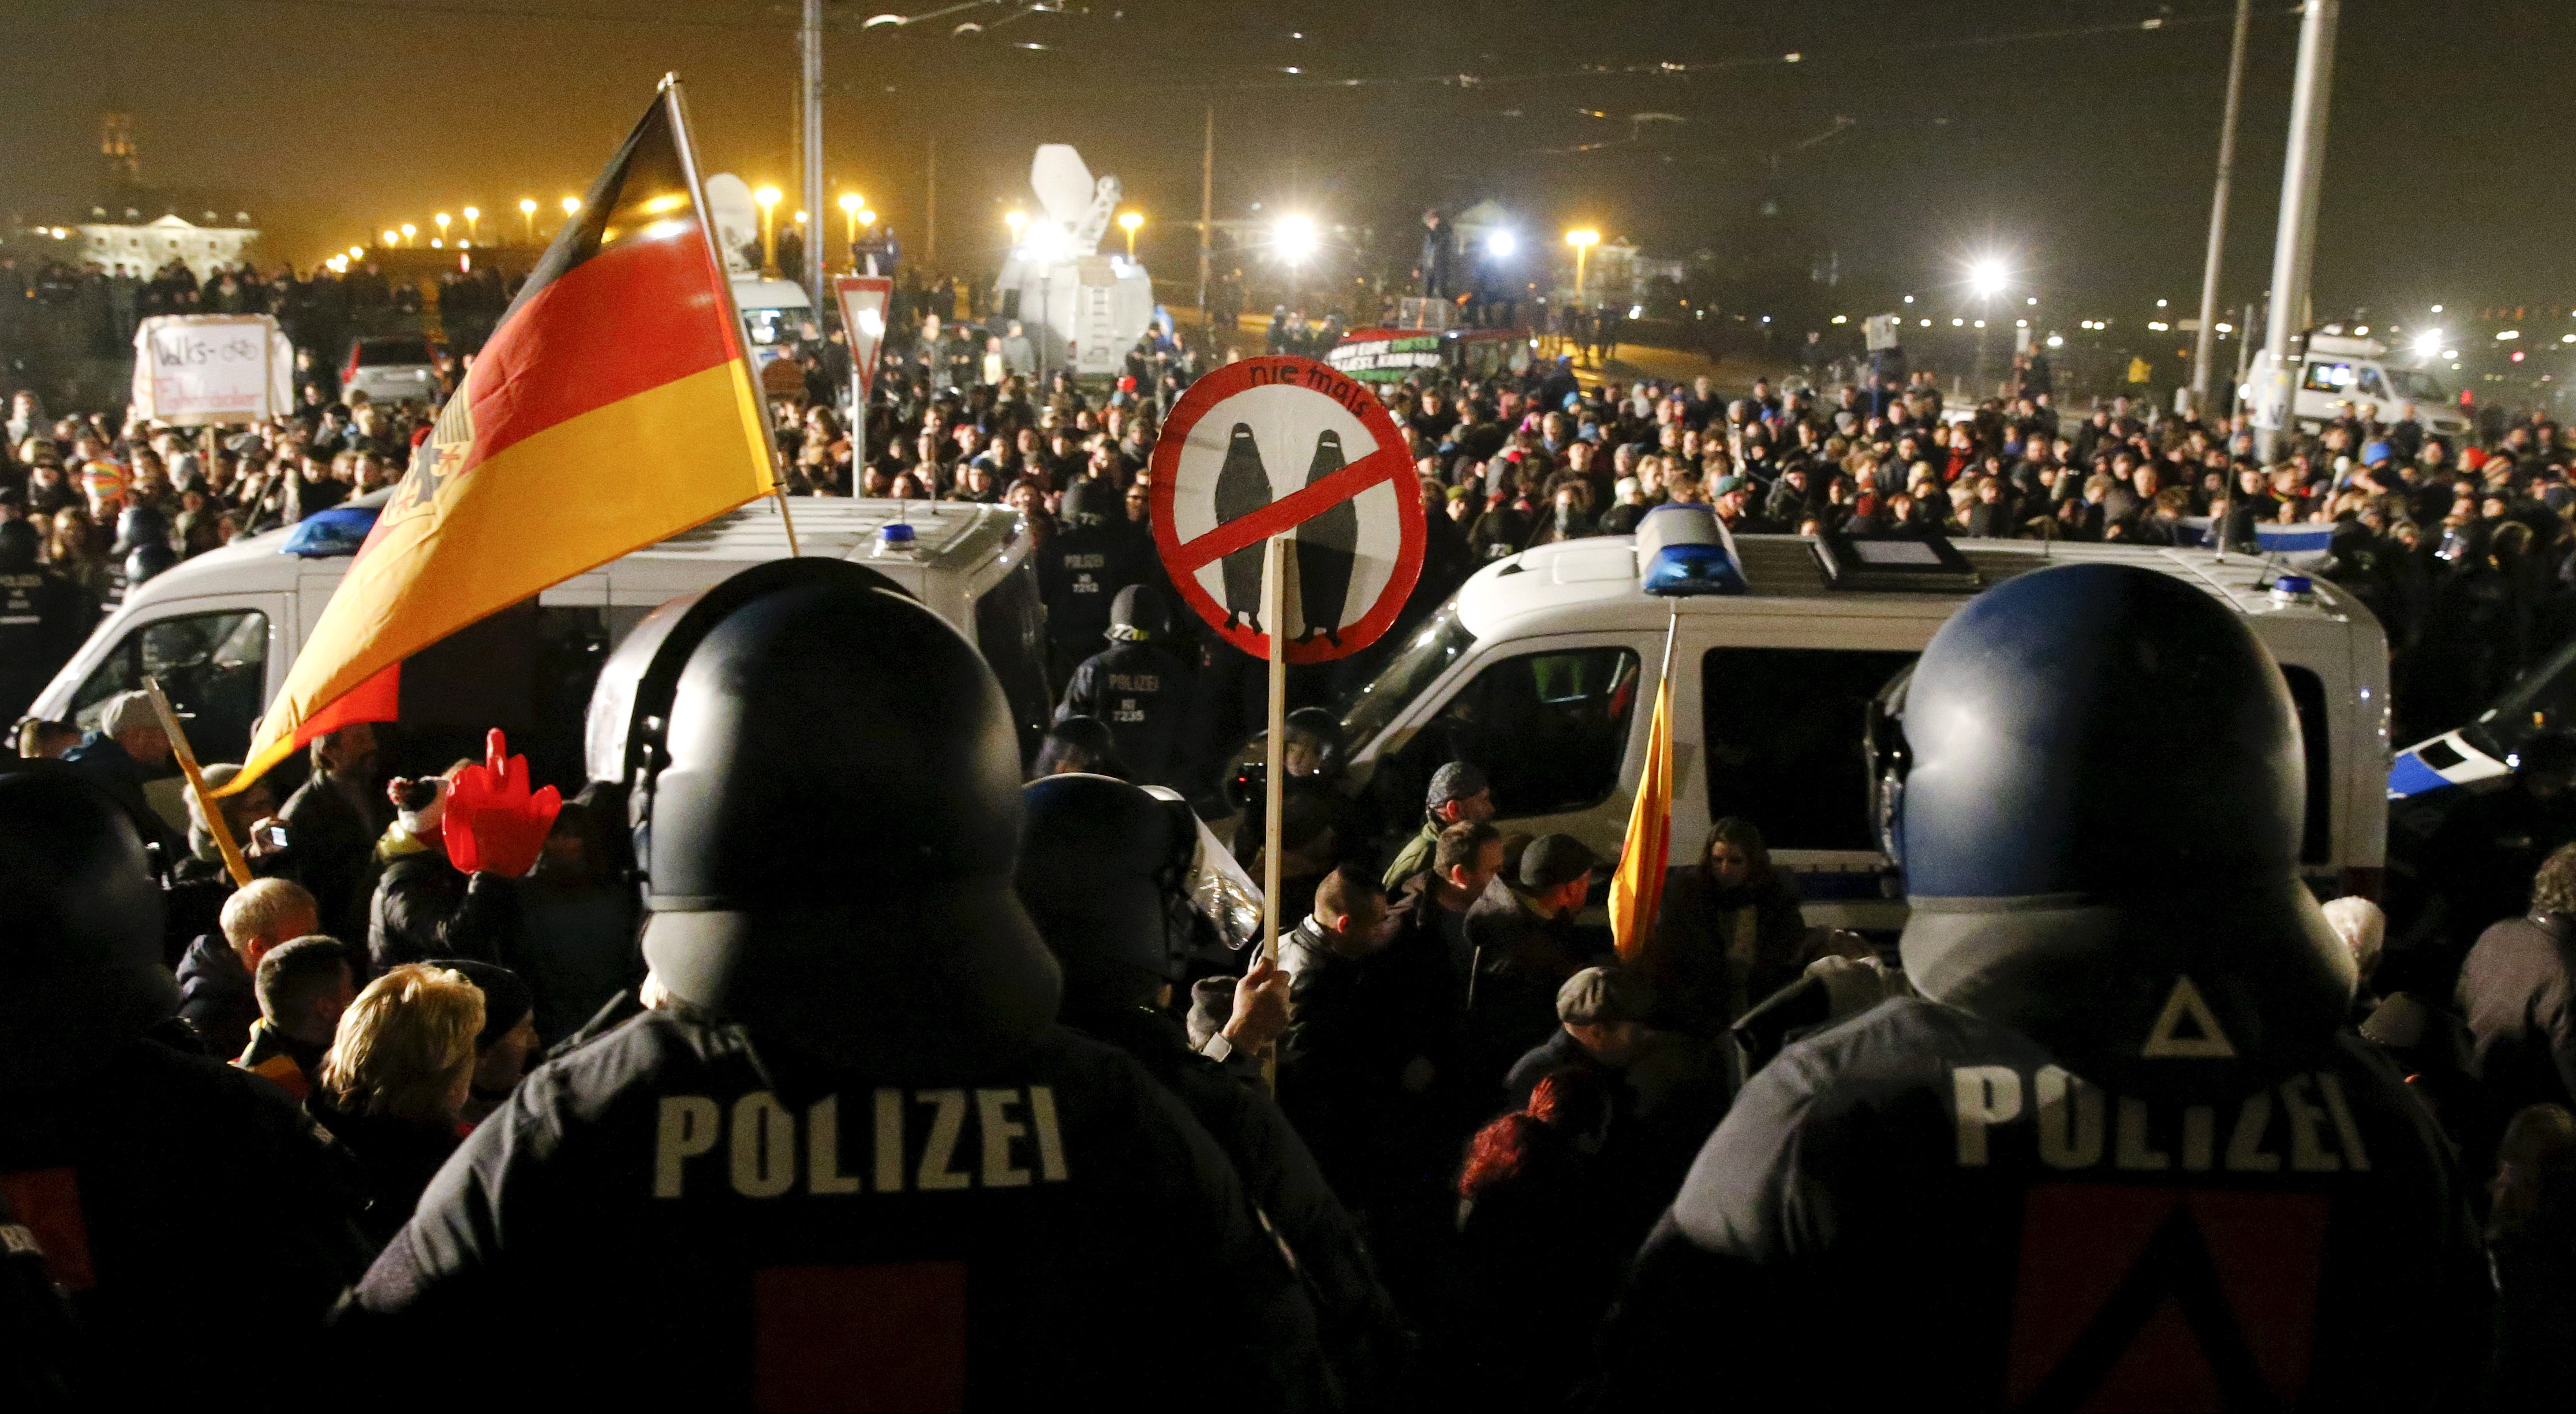 Police form a barrier observing People attending an anti-immigration demonstration in Dresden